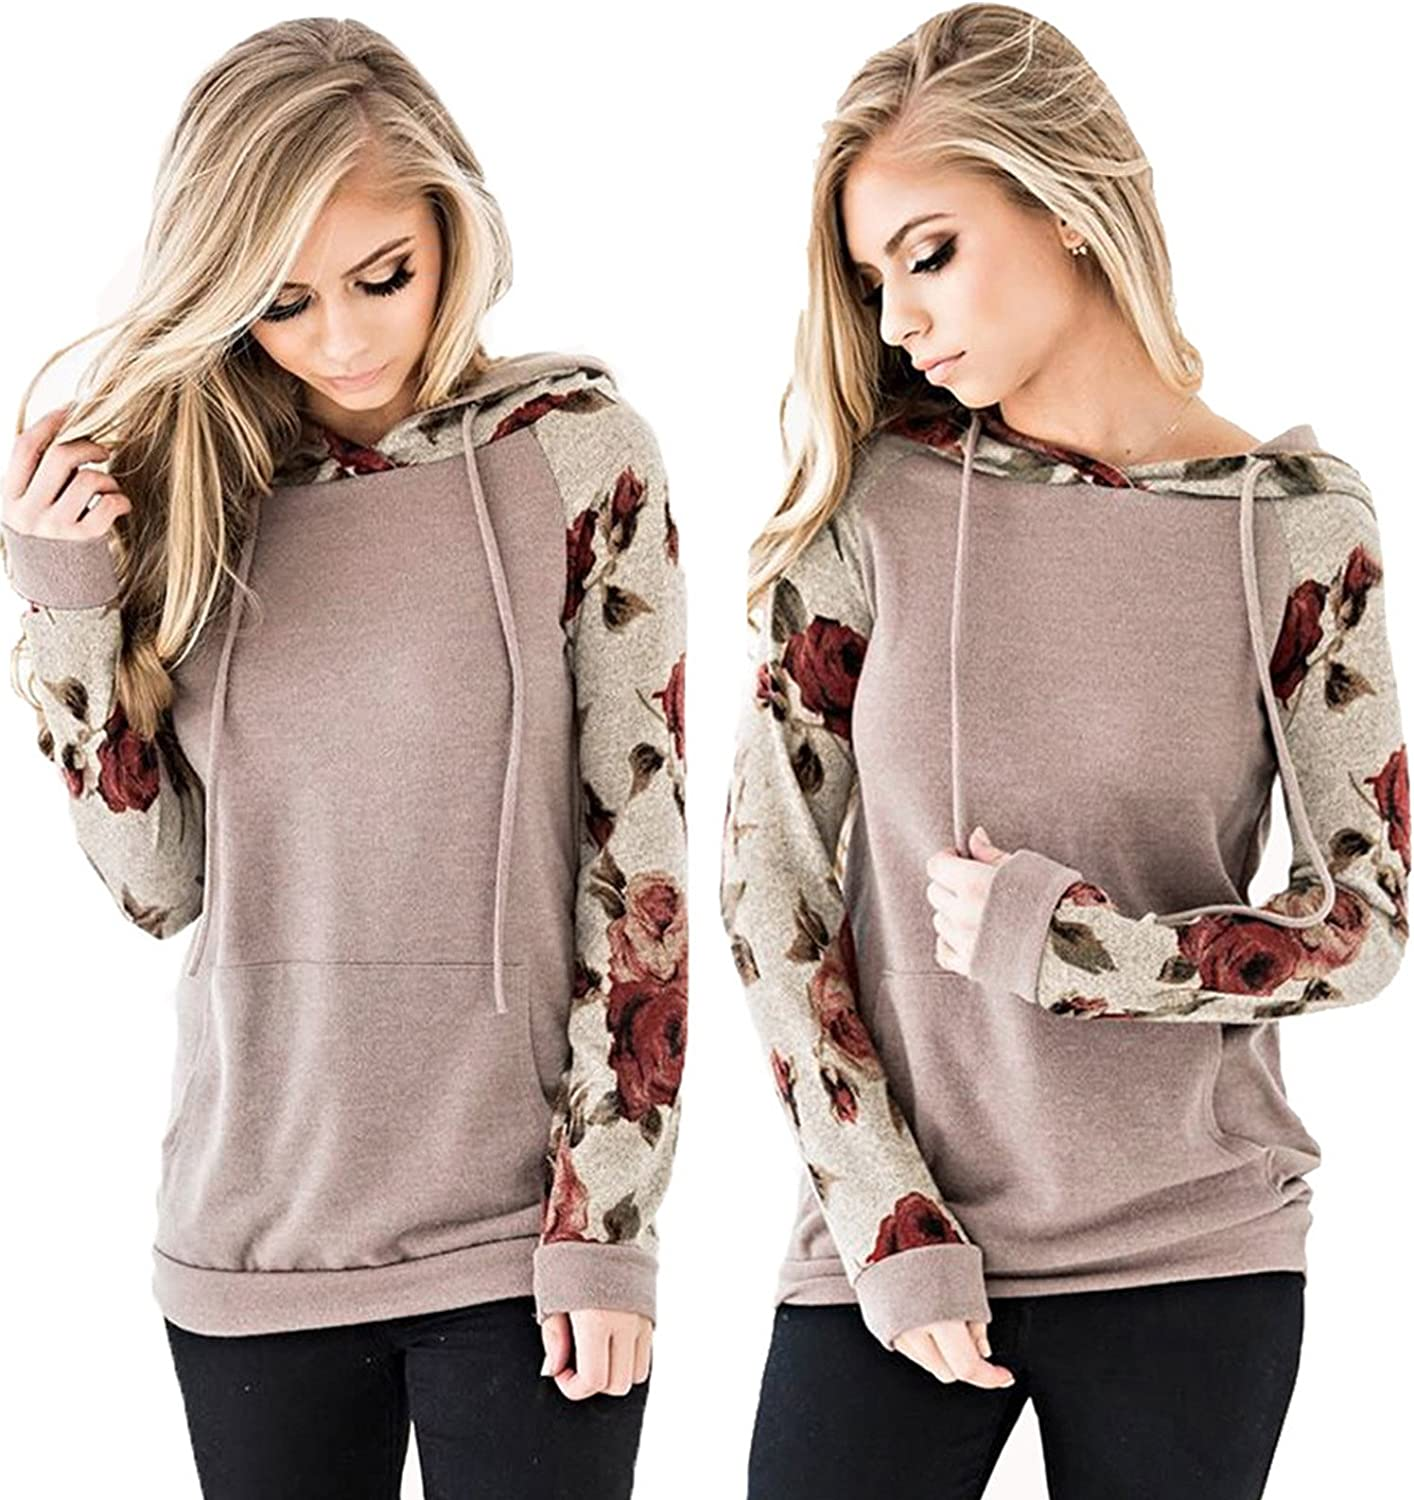 Angashion Womens Floral Printed Long Sleeve Pullover Hoodies Sweatshirt with Pocket